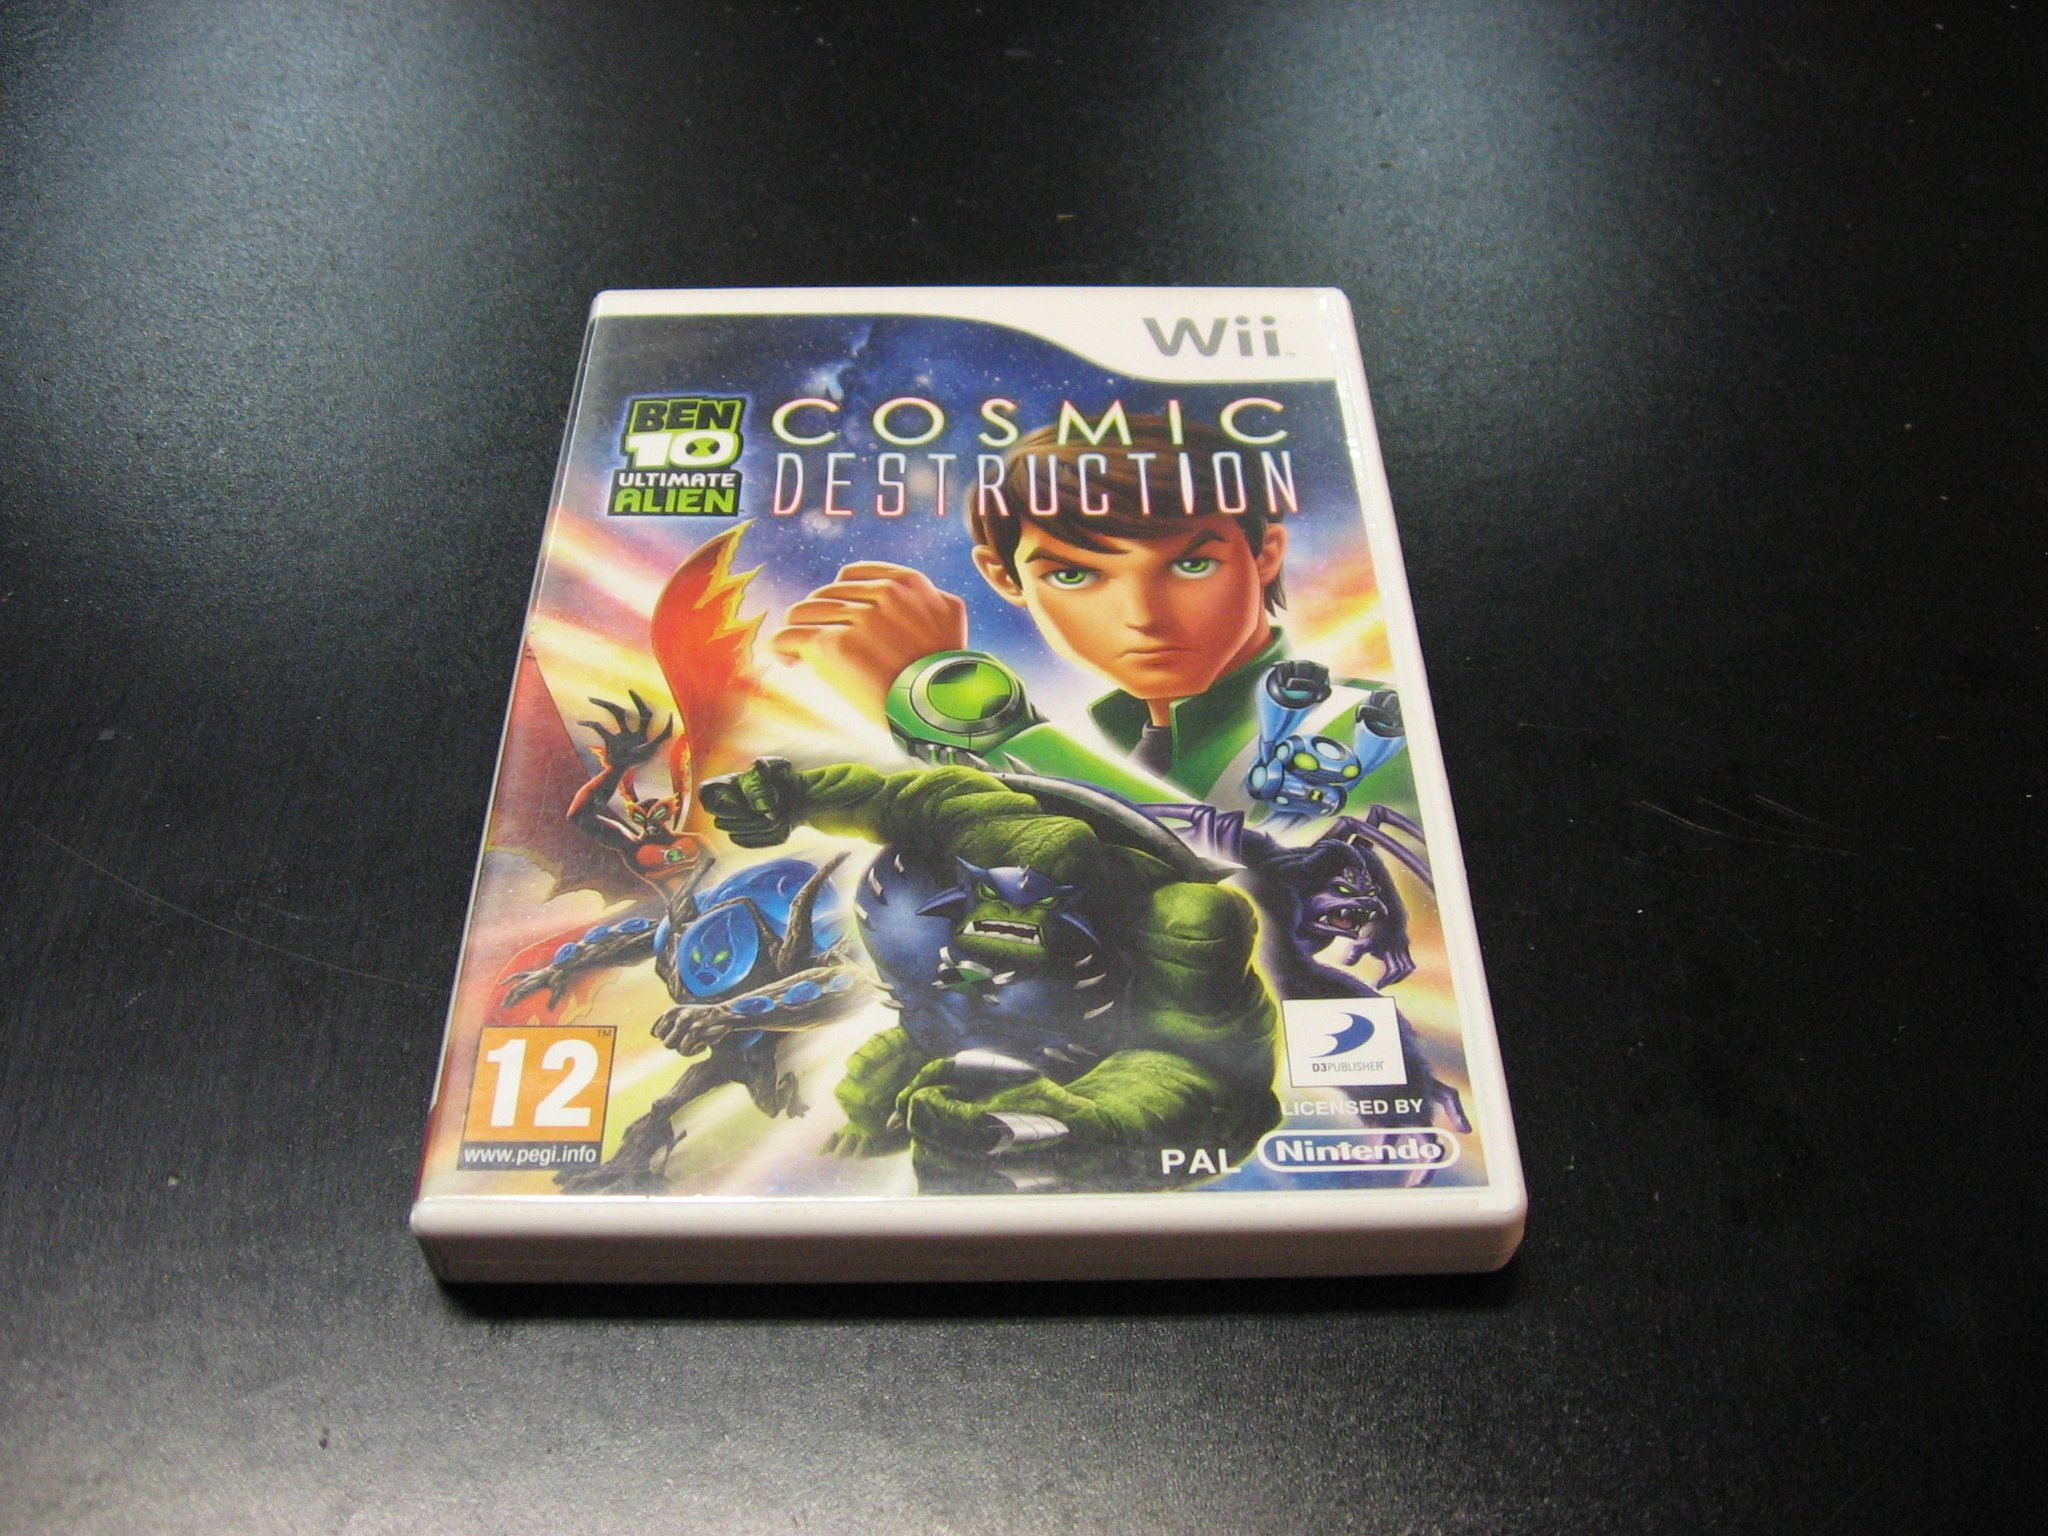 Ben 10 Ultimate alien Cosmic Destruction - GRA Nintendo Wii Sklep